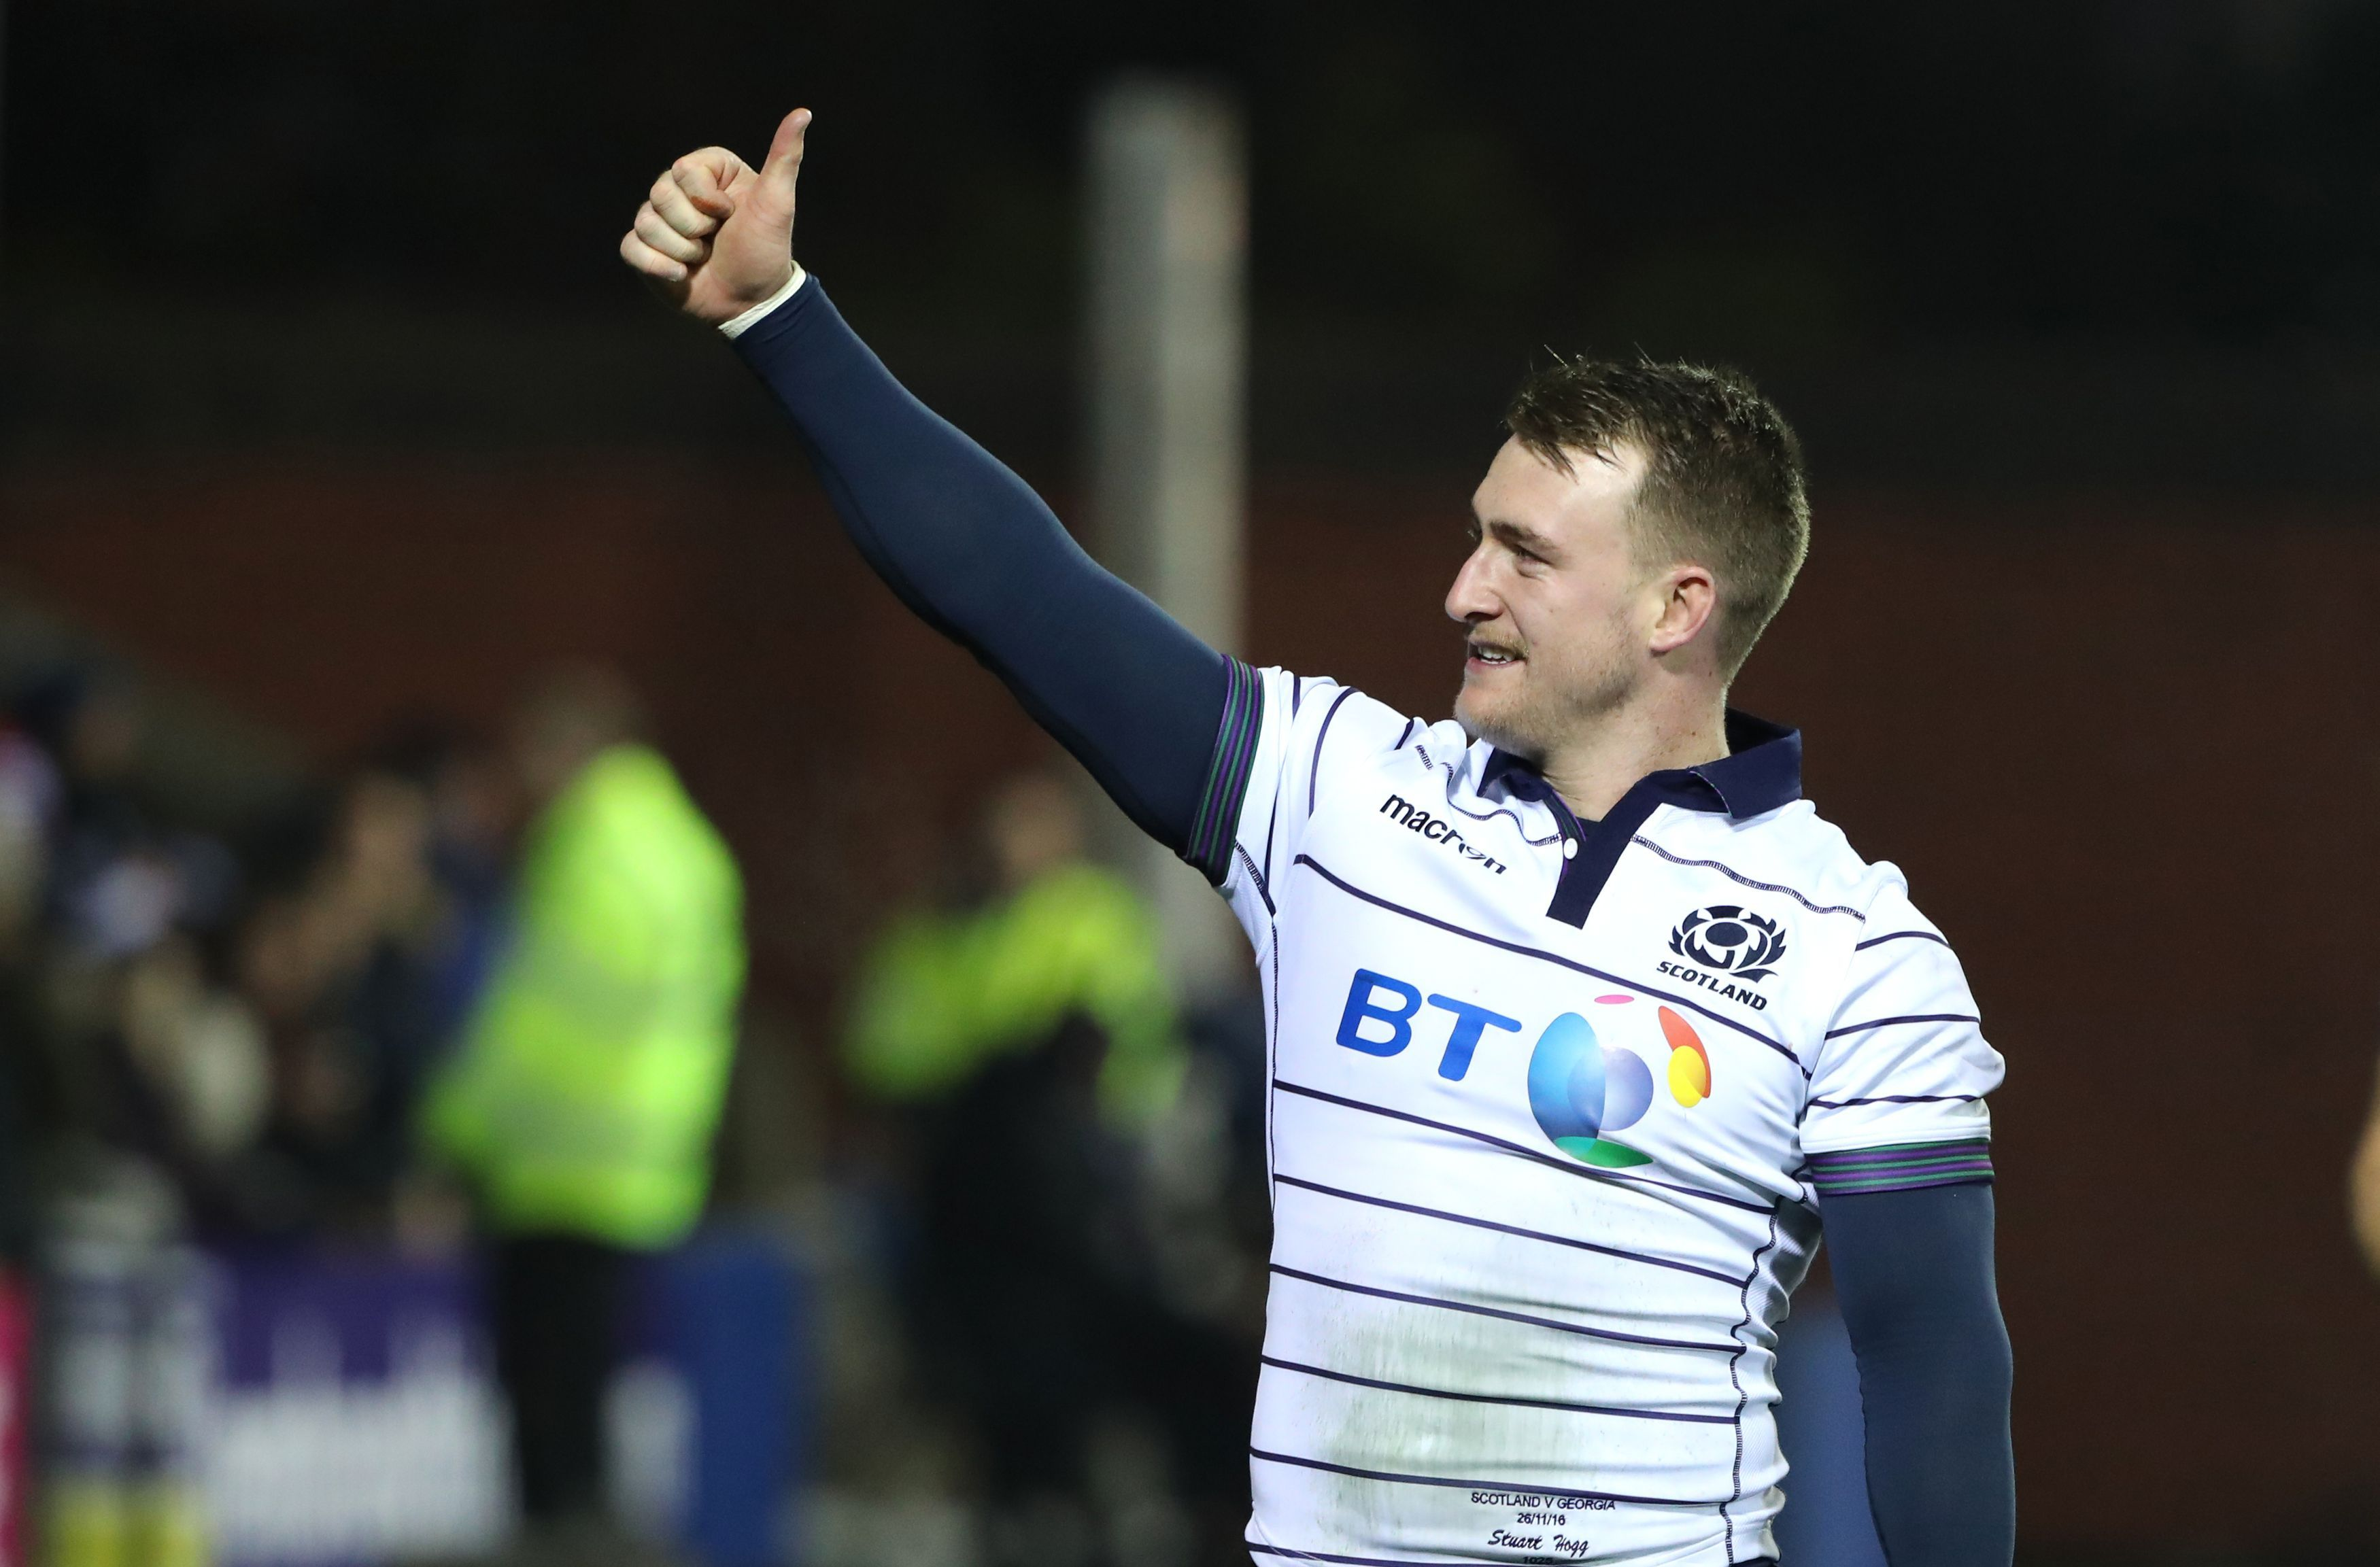 Scotland's Stuart Hogg celebrates after the Autumn International match at Rugby Park, Kilmarnock.